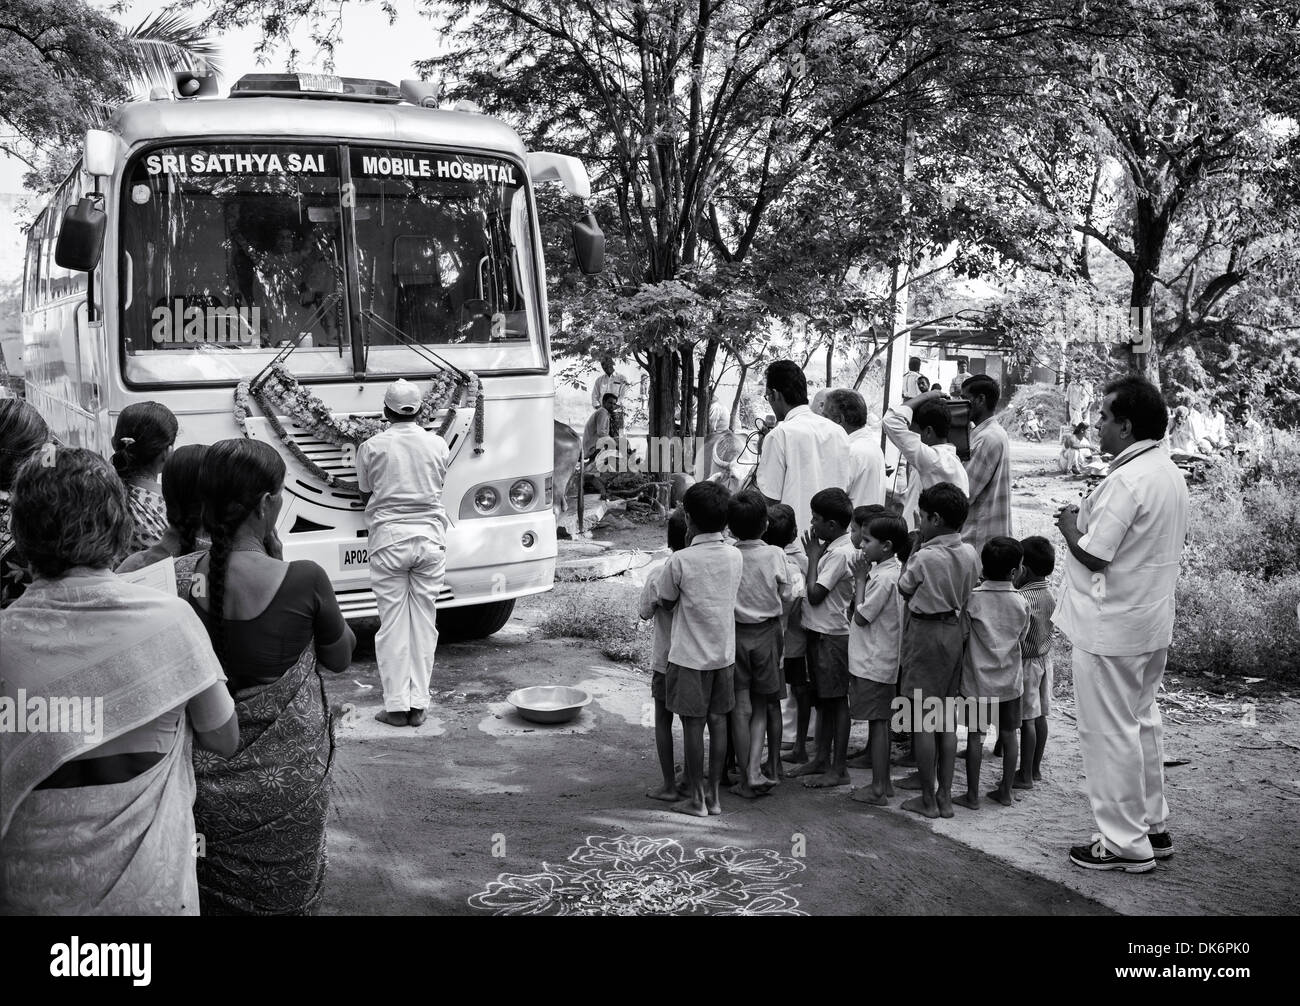 Sri Sathya Sai Baba Mobile Outreach Hospital Service Clinic Bus At A